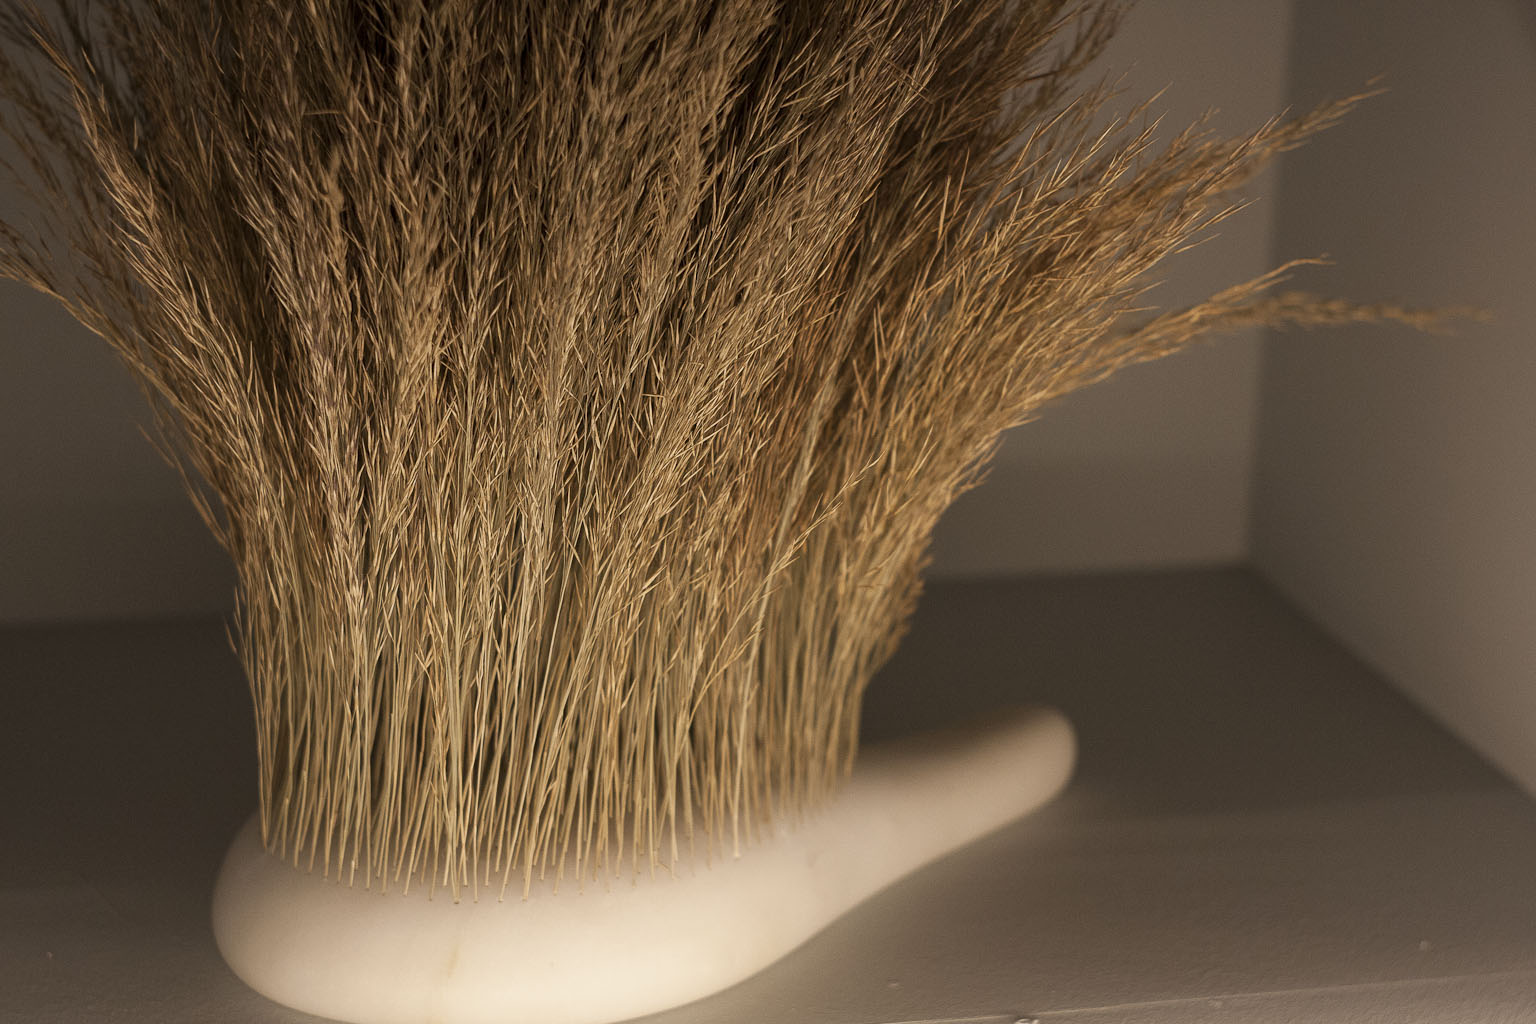 Sensorial Brushes - Najla El Zein - Carpenter's work Shop Gallery - Precious par Elizabeth Leriche